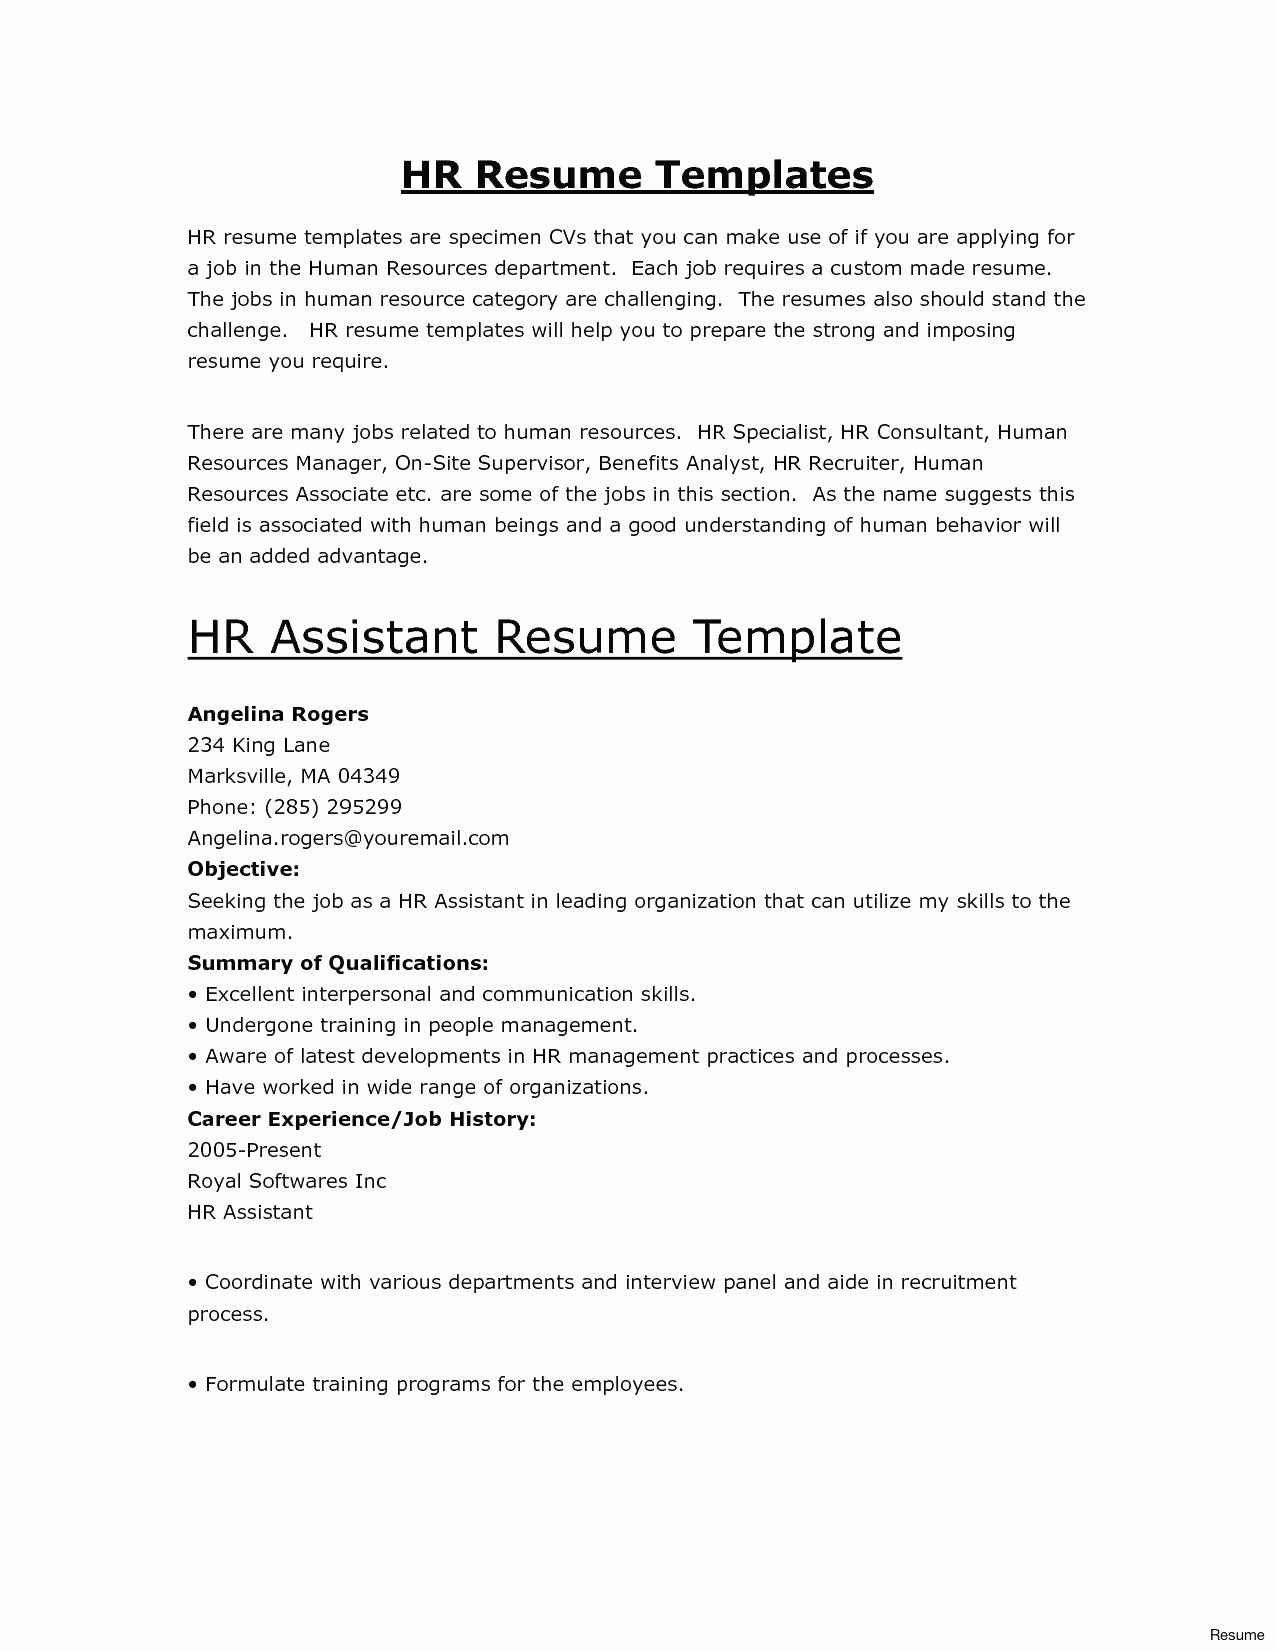 Dental assistant Resume Template Free - Free Dental assistant Resume Templates Perfect 19 Elegant Dental